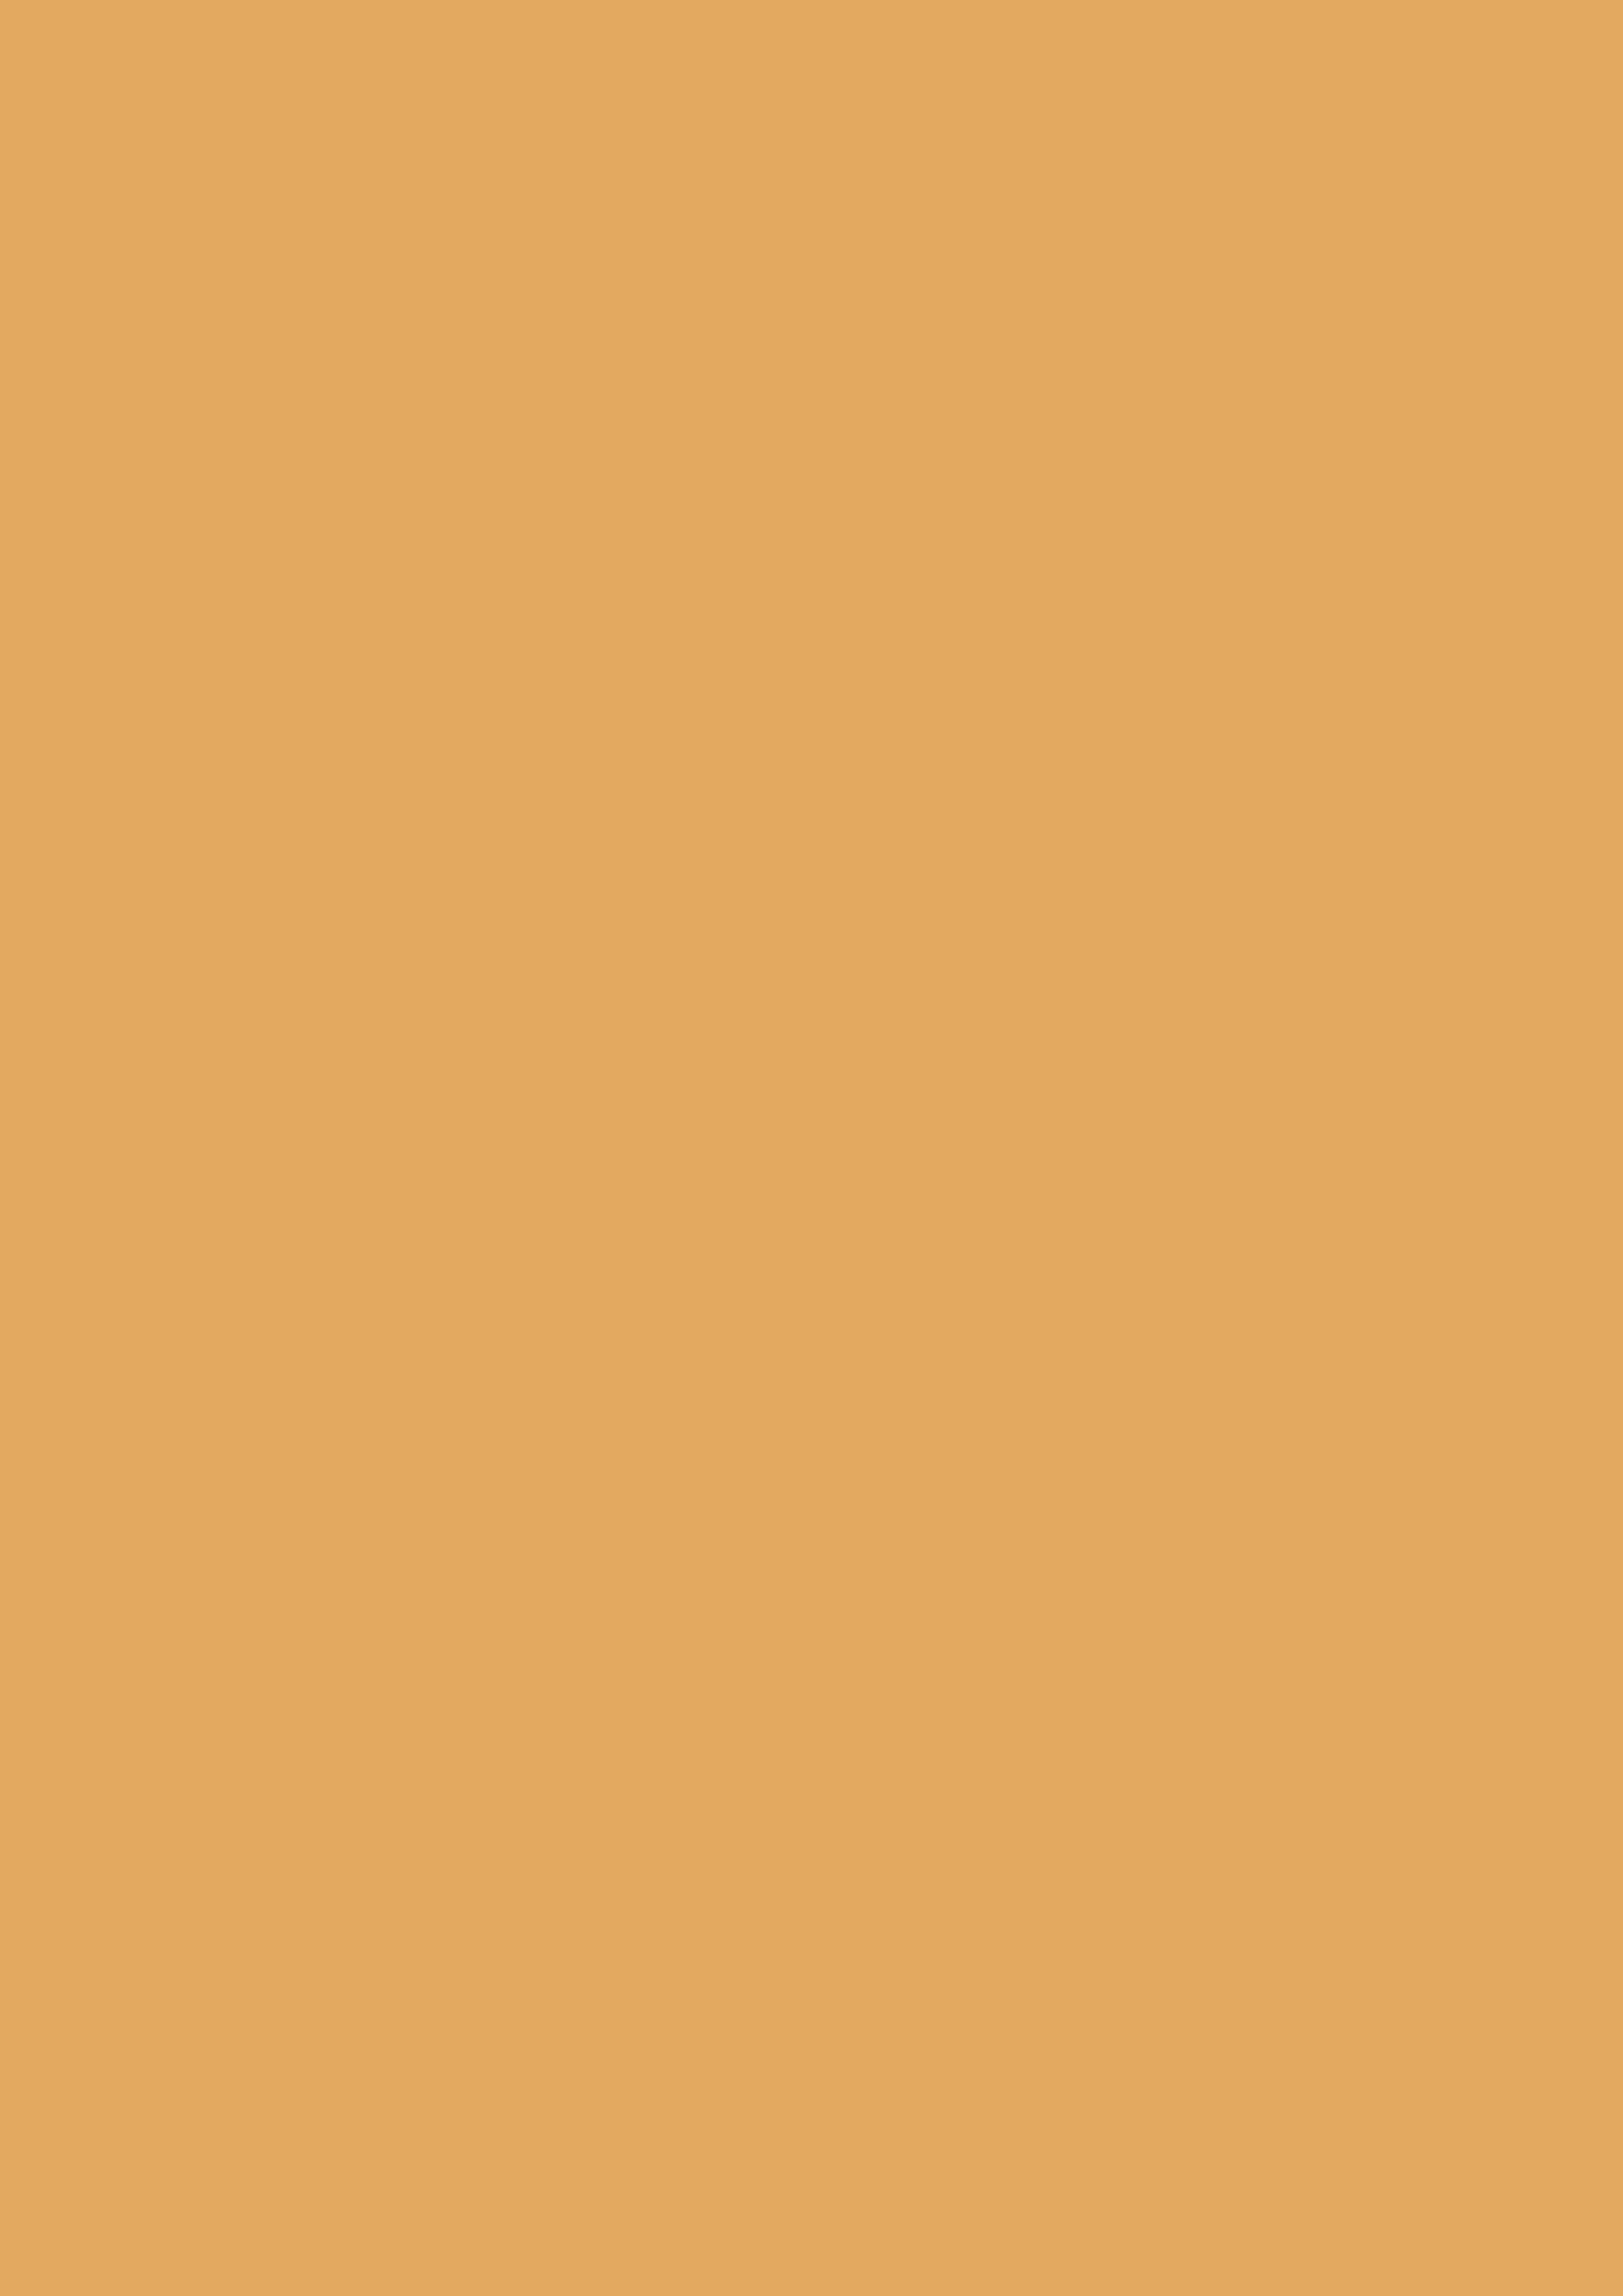 2480x3508 Earth Yellow Solid Color Background